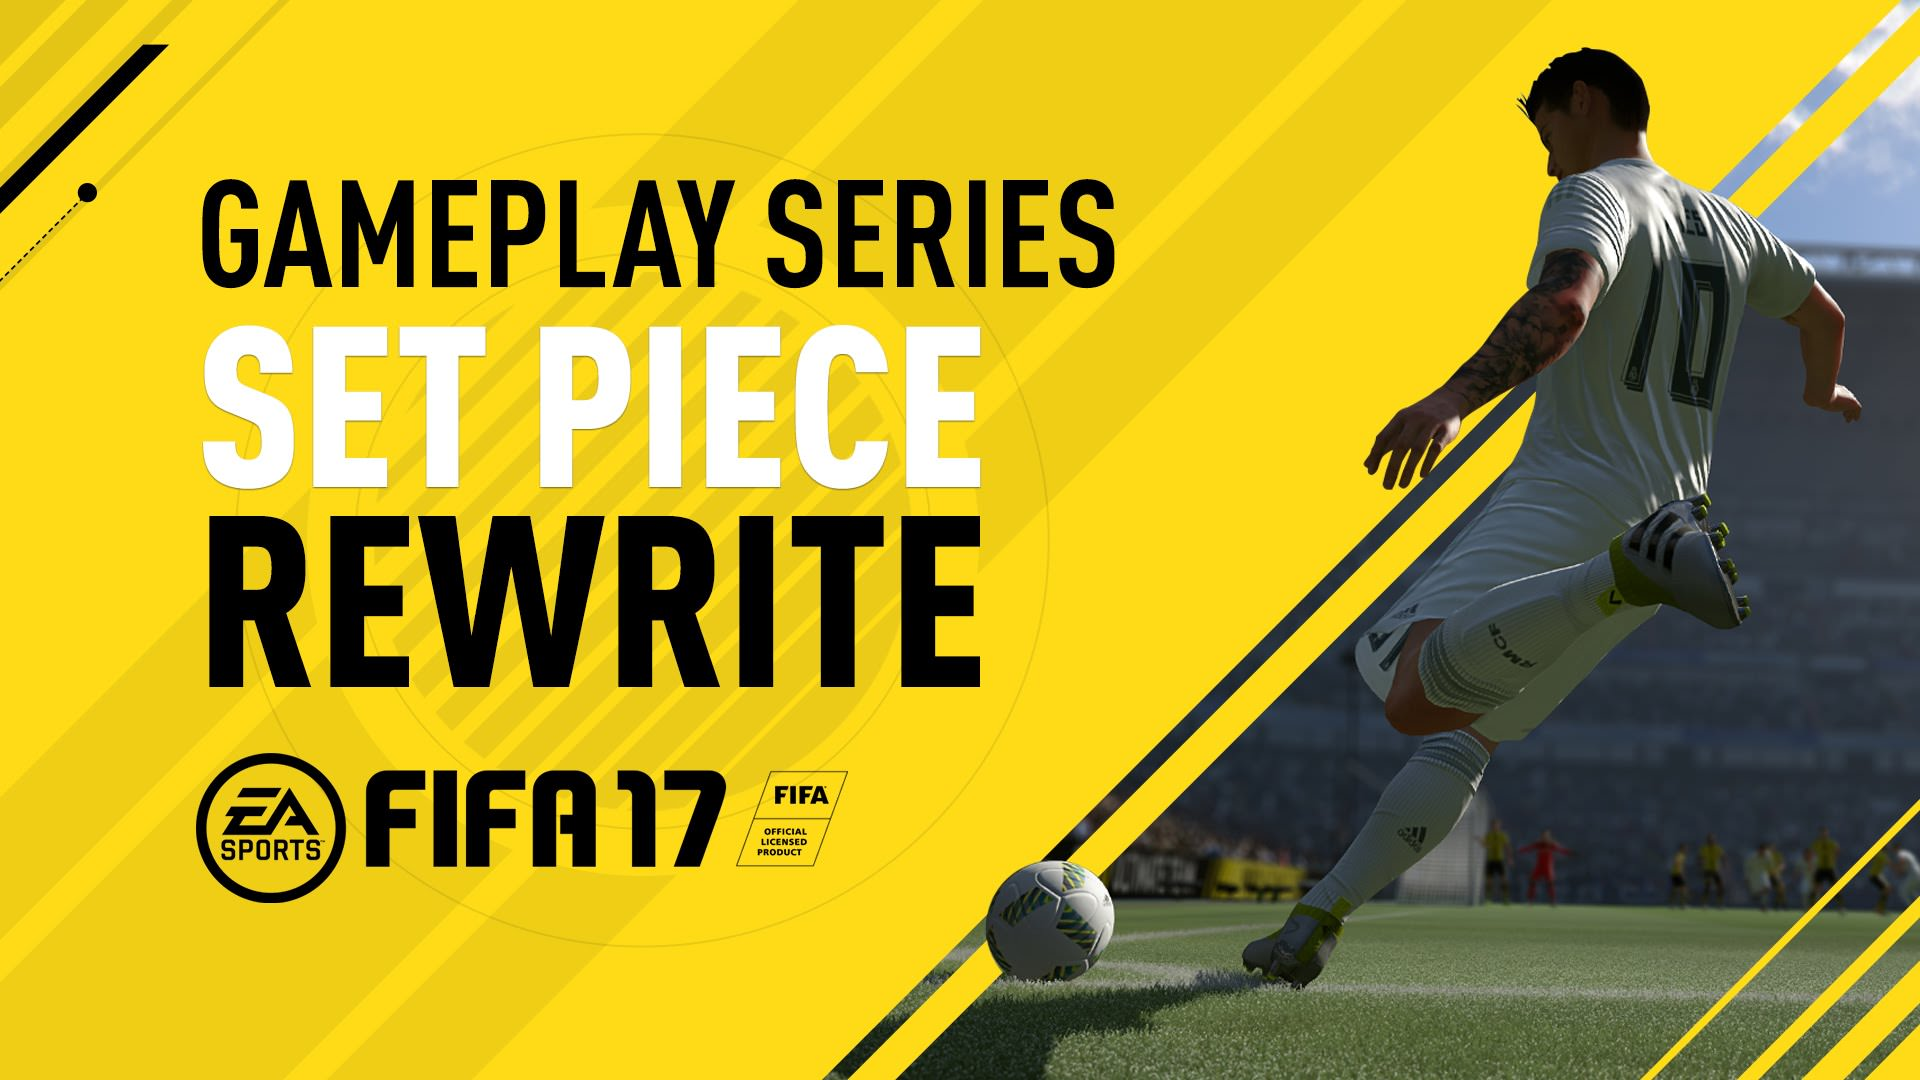 FIFA 17 Gameplay Features – Set Piece Rewrite